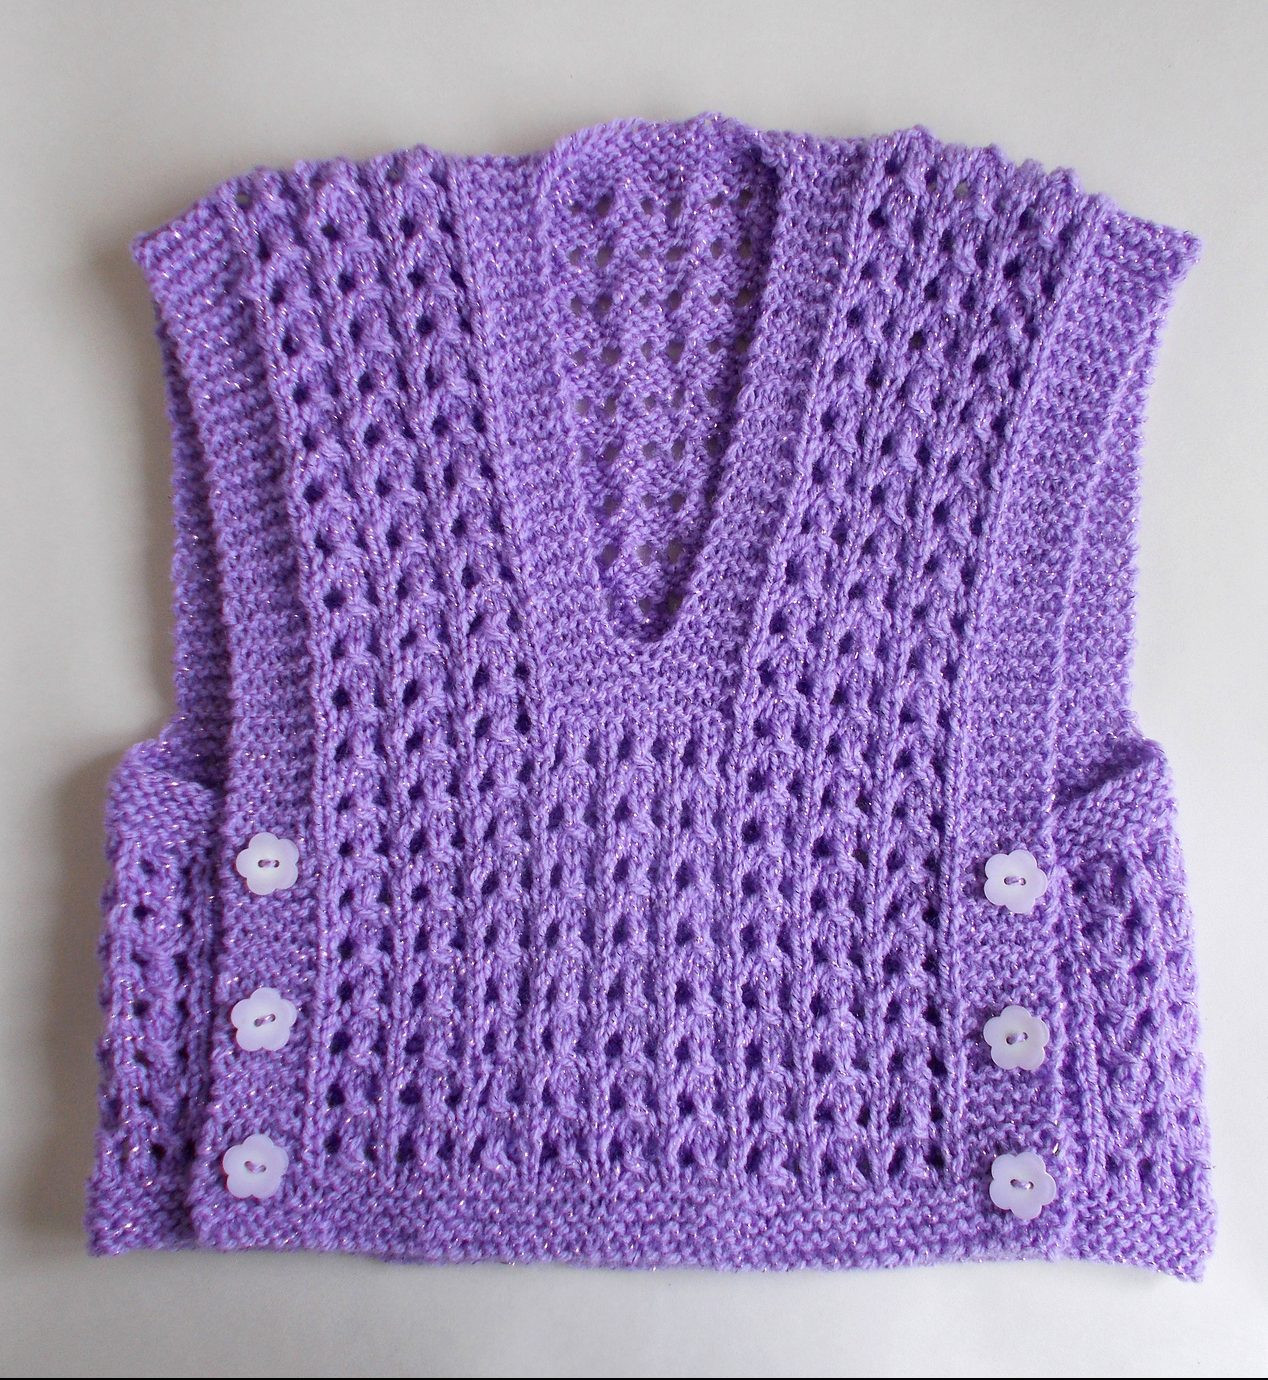 Free Baby Knitting Patterns Awesome Vests for Babies and Children Knitting Patterns Of Awesome 43 Images Free Baby Knitting Patterns